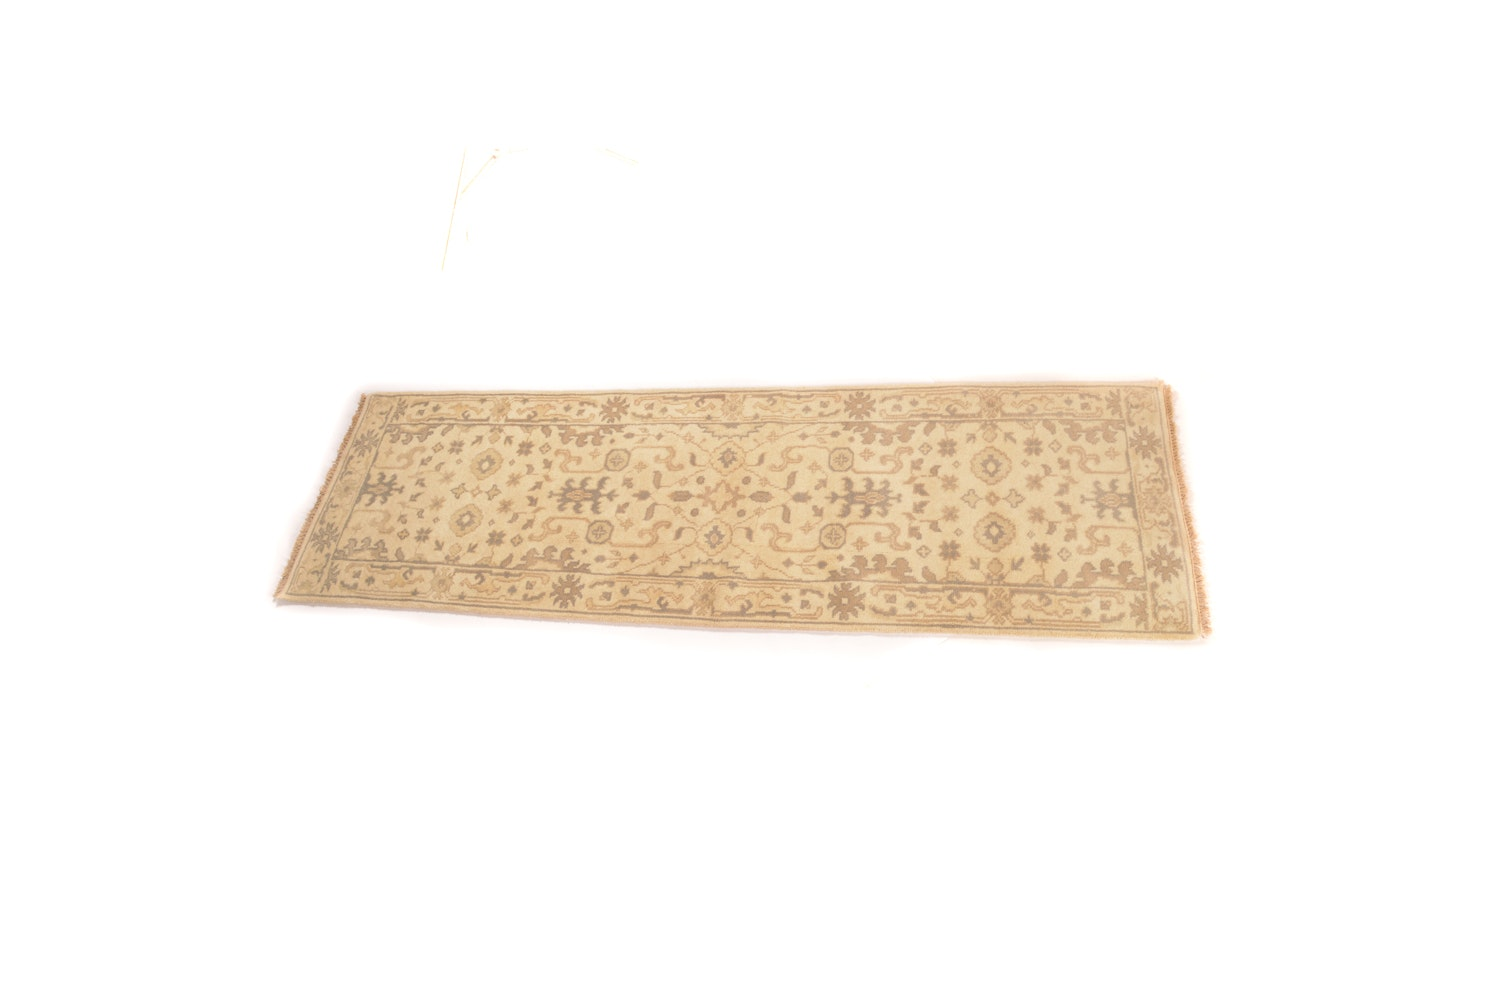 A Hand-Knotted Indo-Persian Wool Carpet Runner